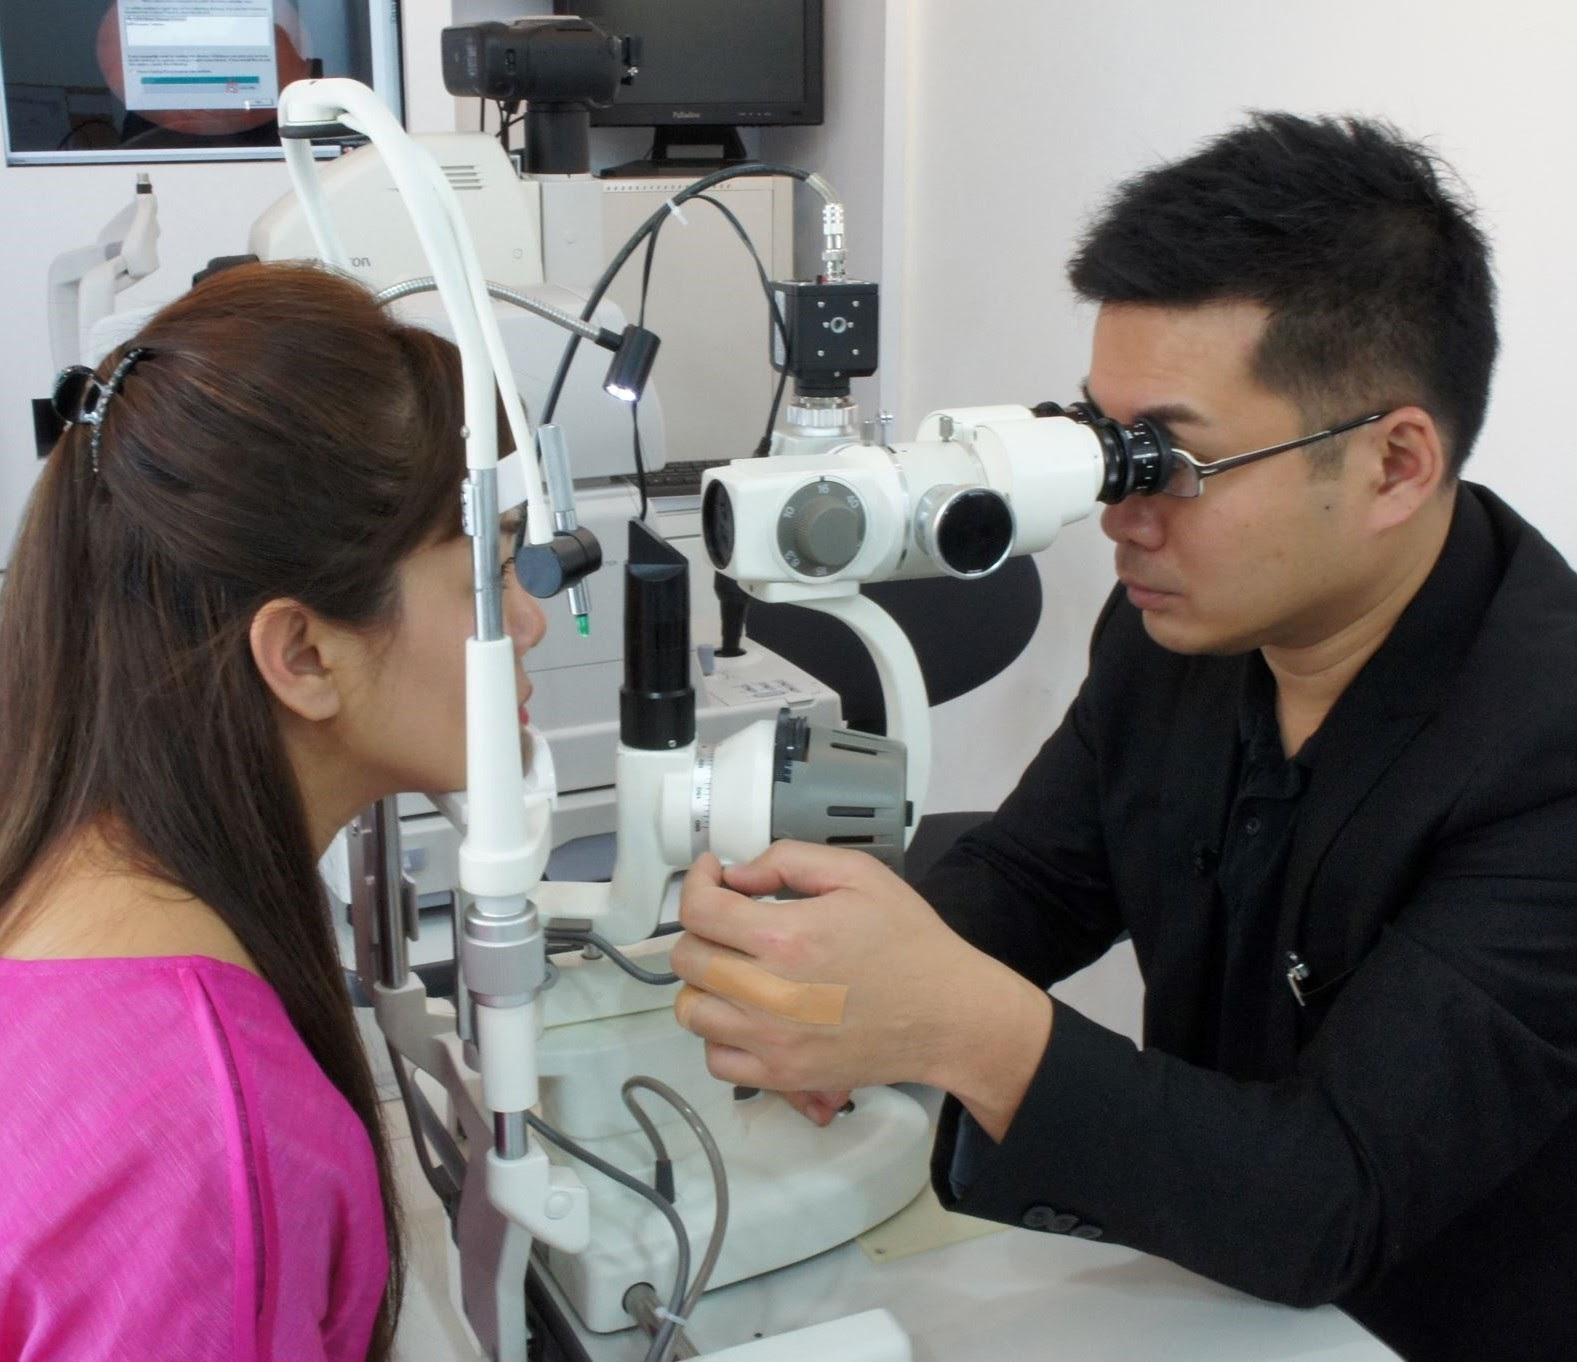 Your Eye Guardian provides comprehensive eye tests to help craft the prescriptive lenses you need